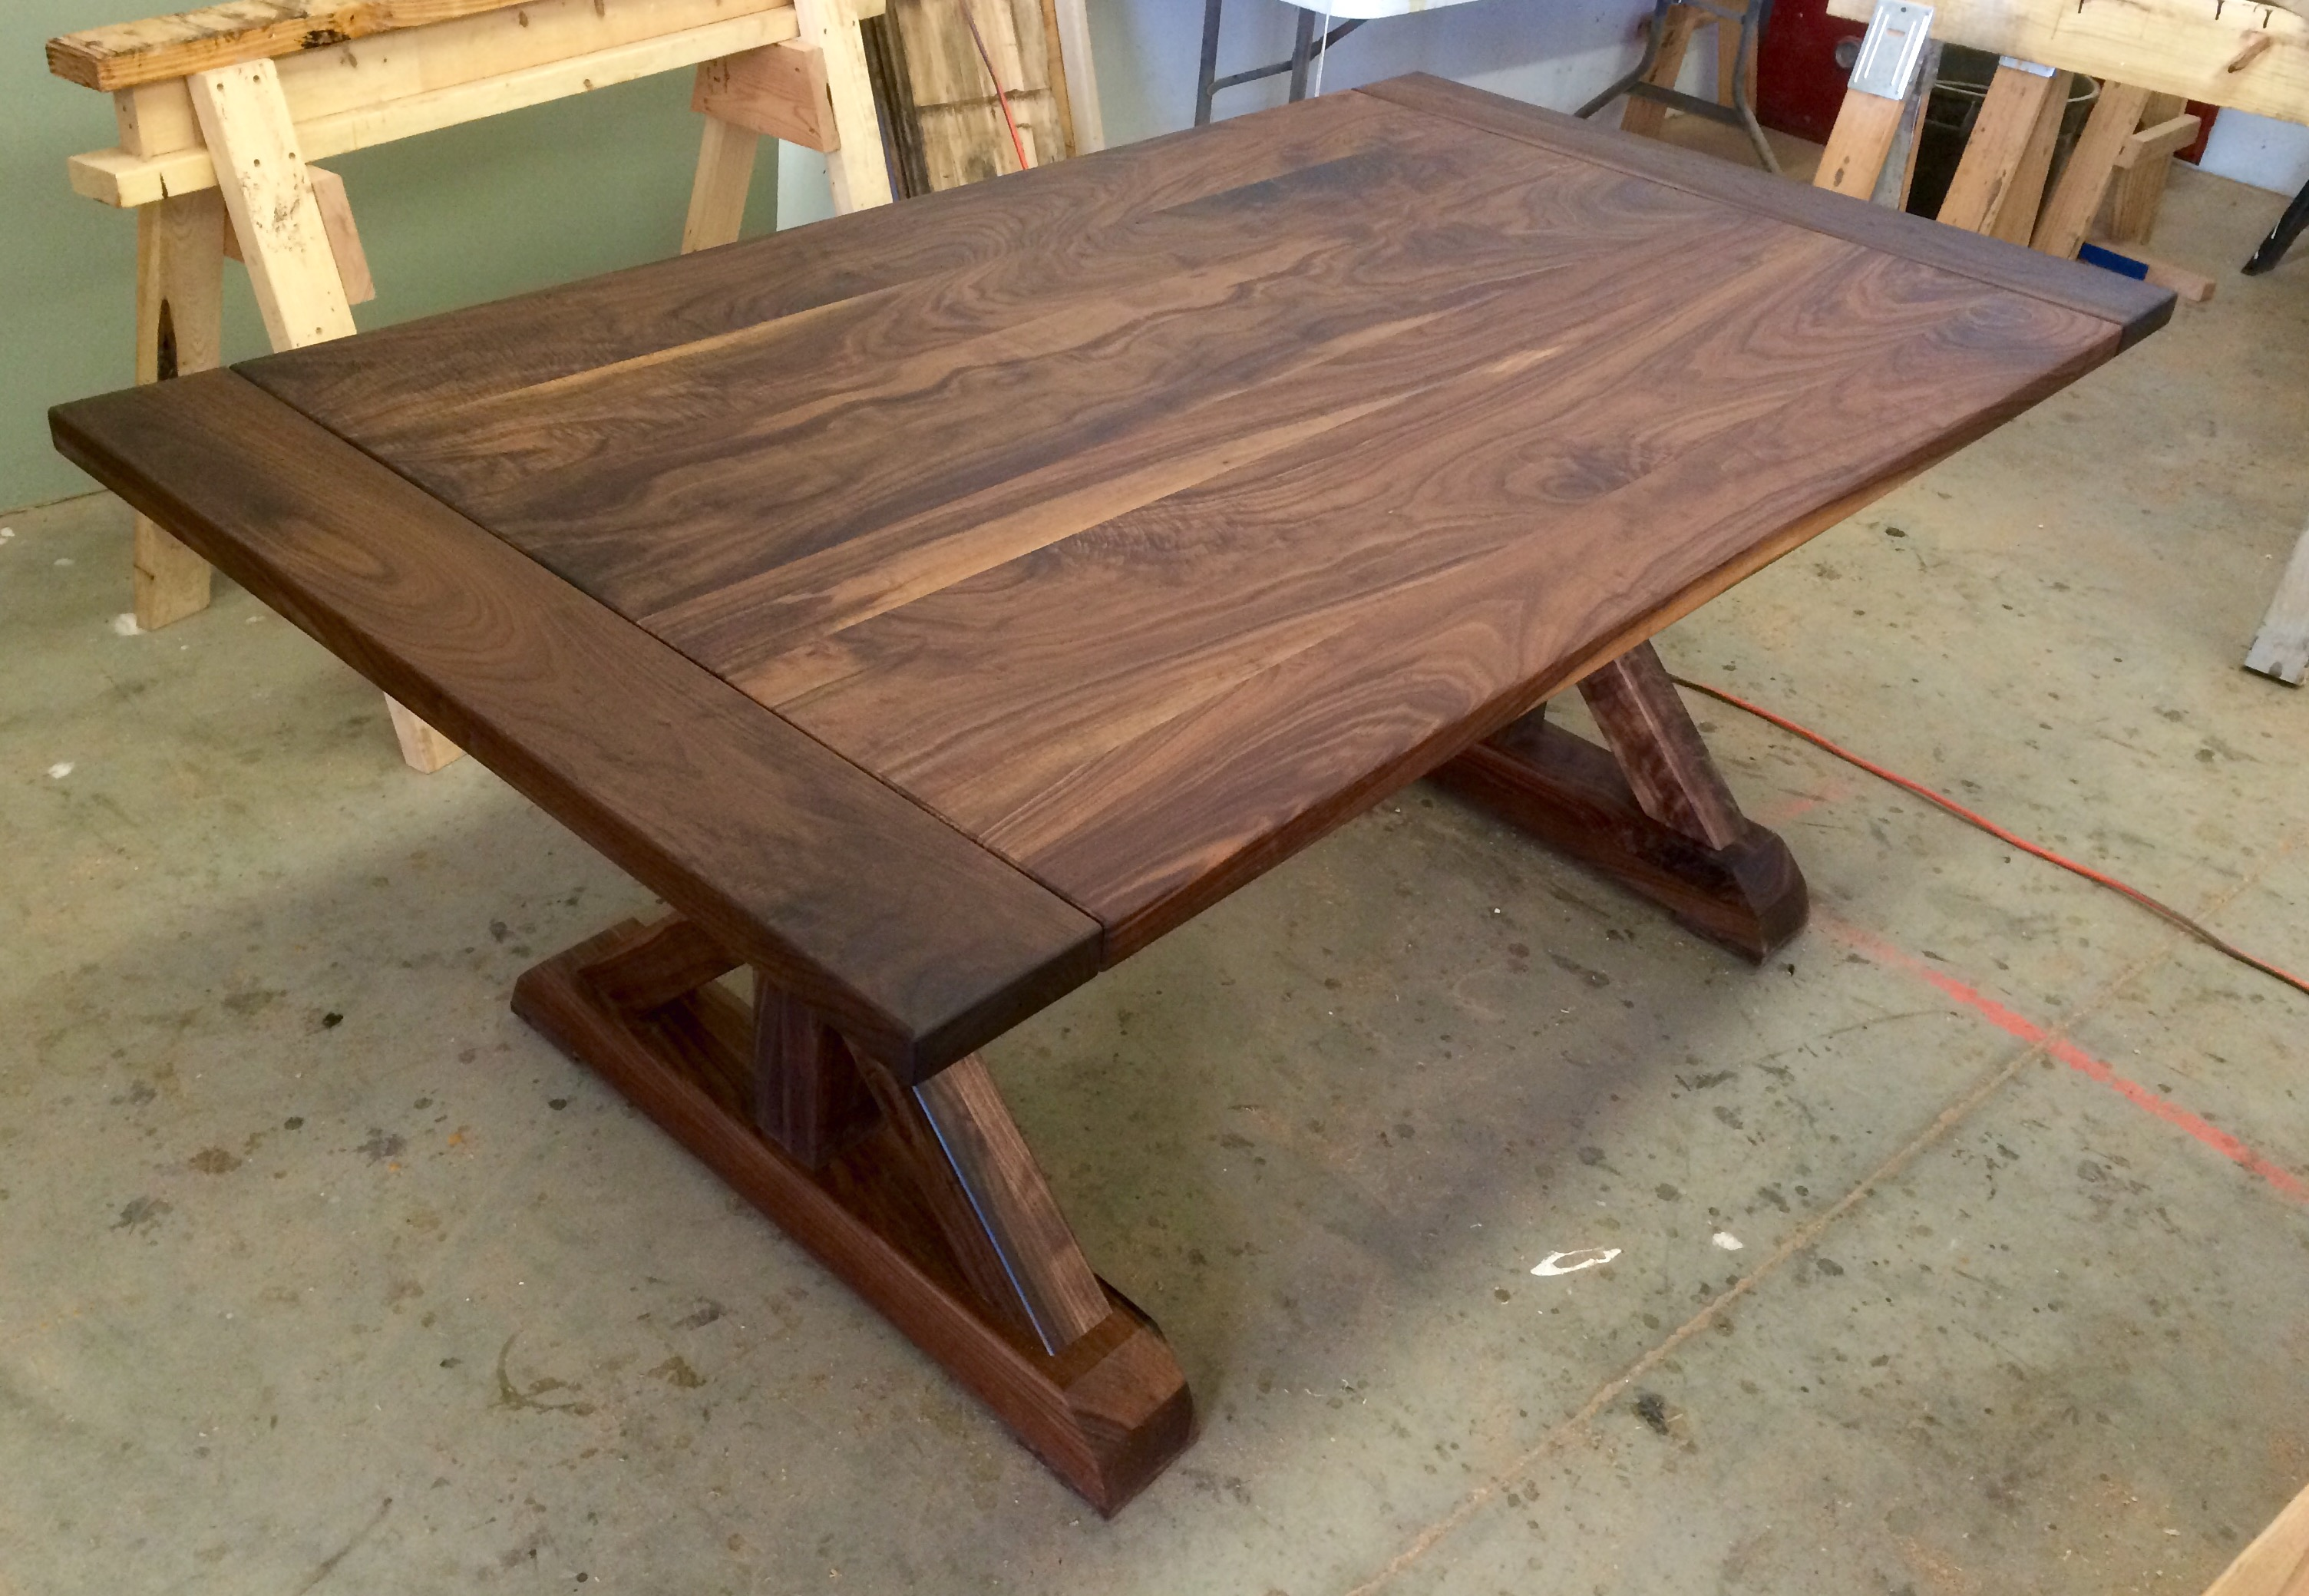 Black Walnut Traditional Trestle Table KS WoodCraft : Walnut Traditional Trestle Table from kswoodcraft.com size 3008 x 2079 jpeg 986kB